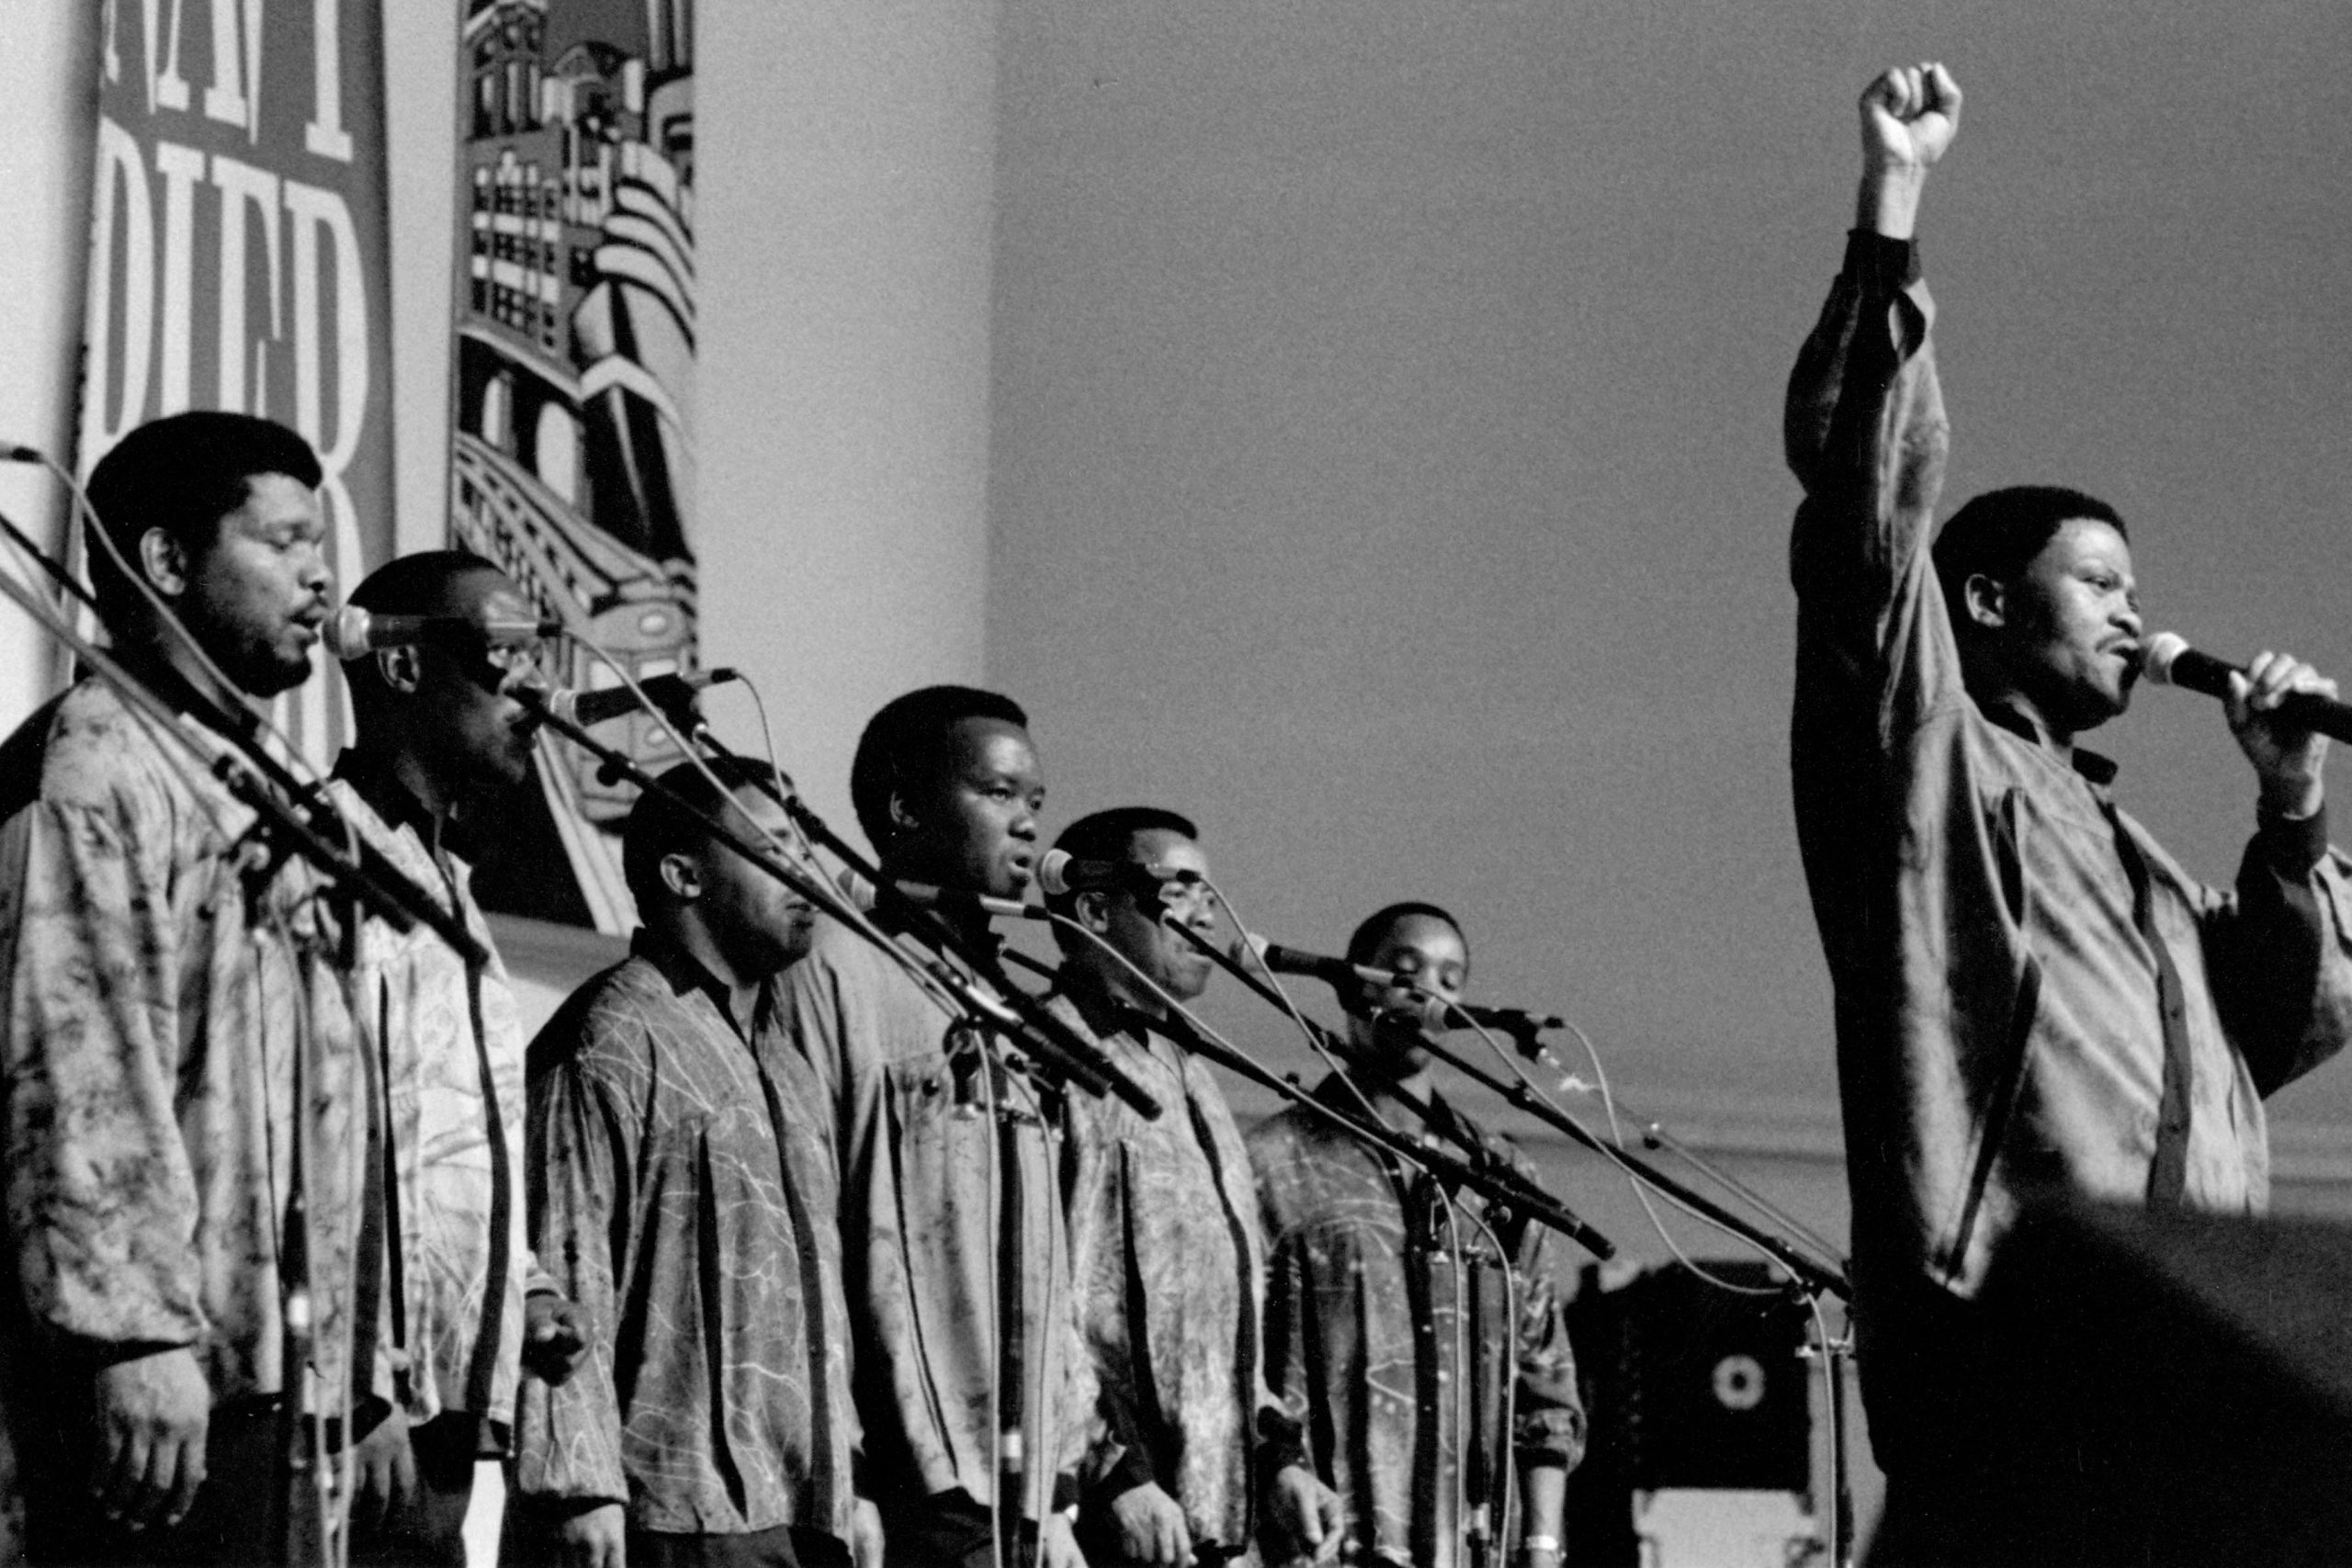 Circa 2000: Ladysmith Black Mambazo is an isicathamiya choir, traditionally all male. Nominated for 17 Grammy Awards, they have won five, most recently Best World Music Album in 2017. (Photograph by James Fraher/Michael Ochs Archives/Getty Images)